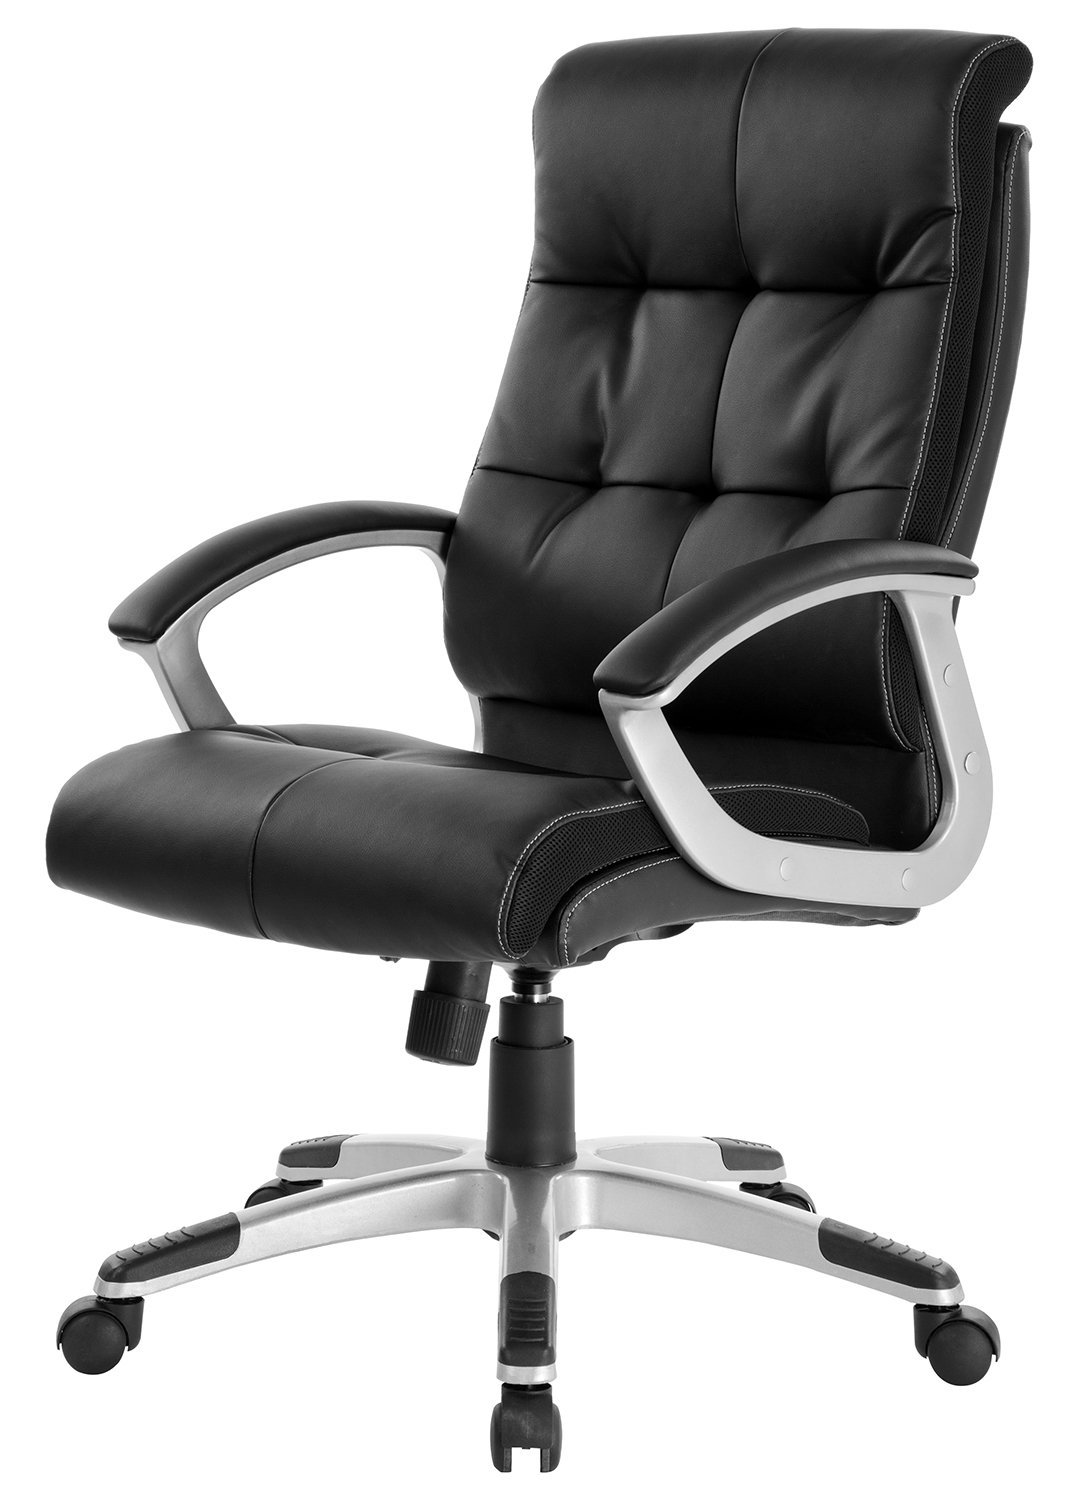 Merax® Pu Leather High Back Office Chair Executive & Managerial Chair Computer Desk Office Chair(Black)